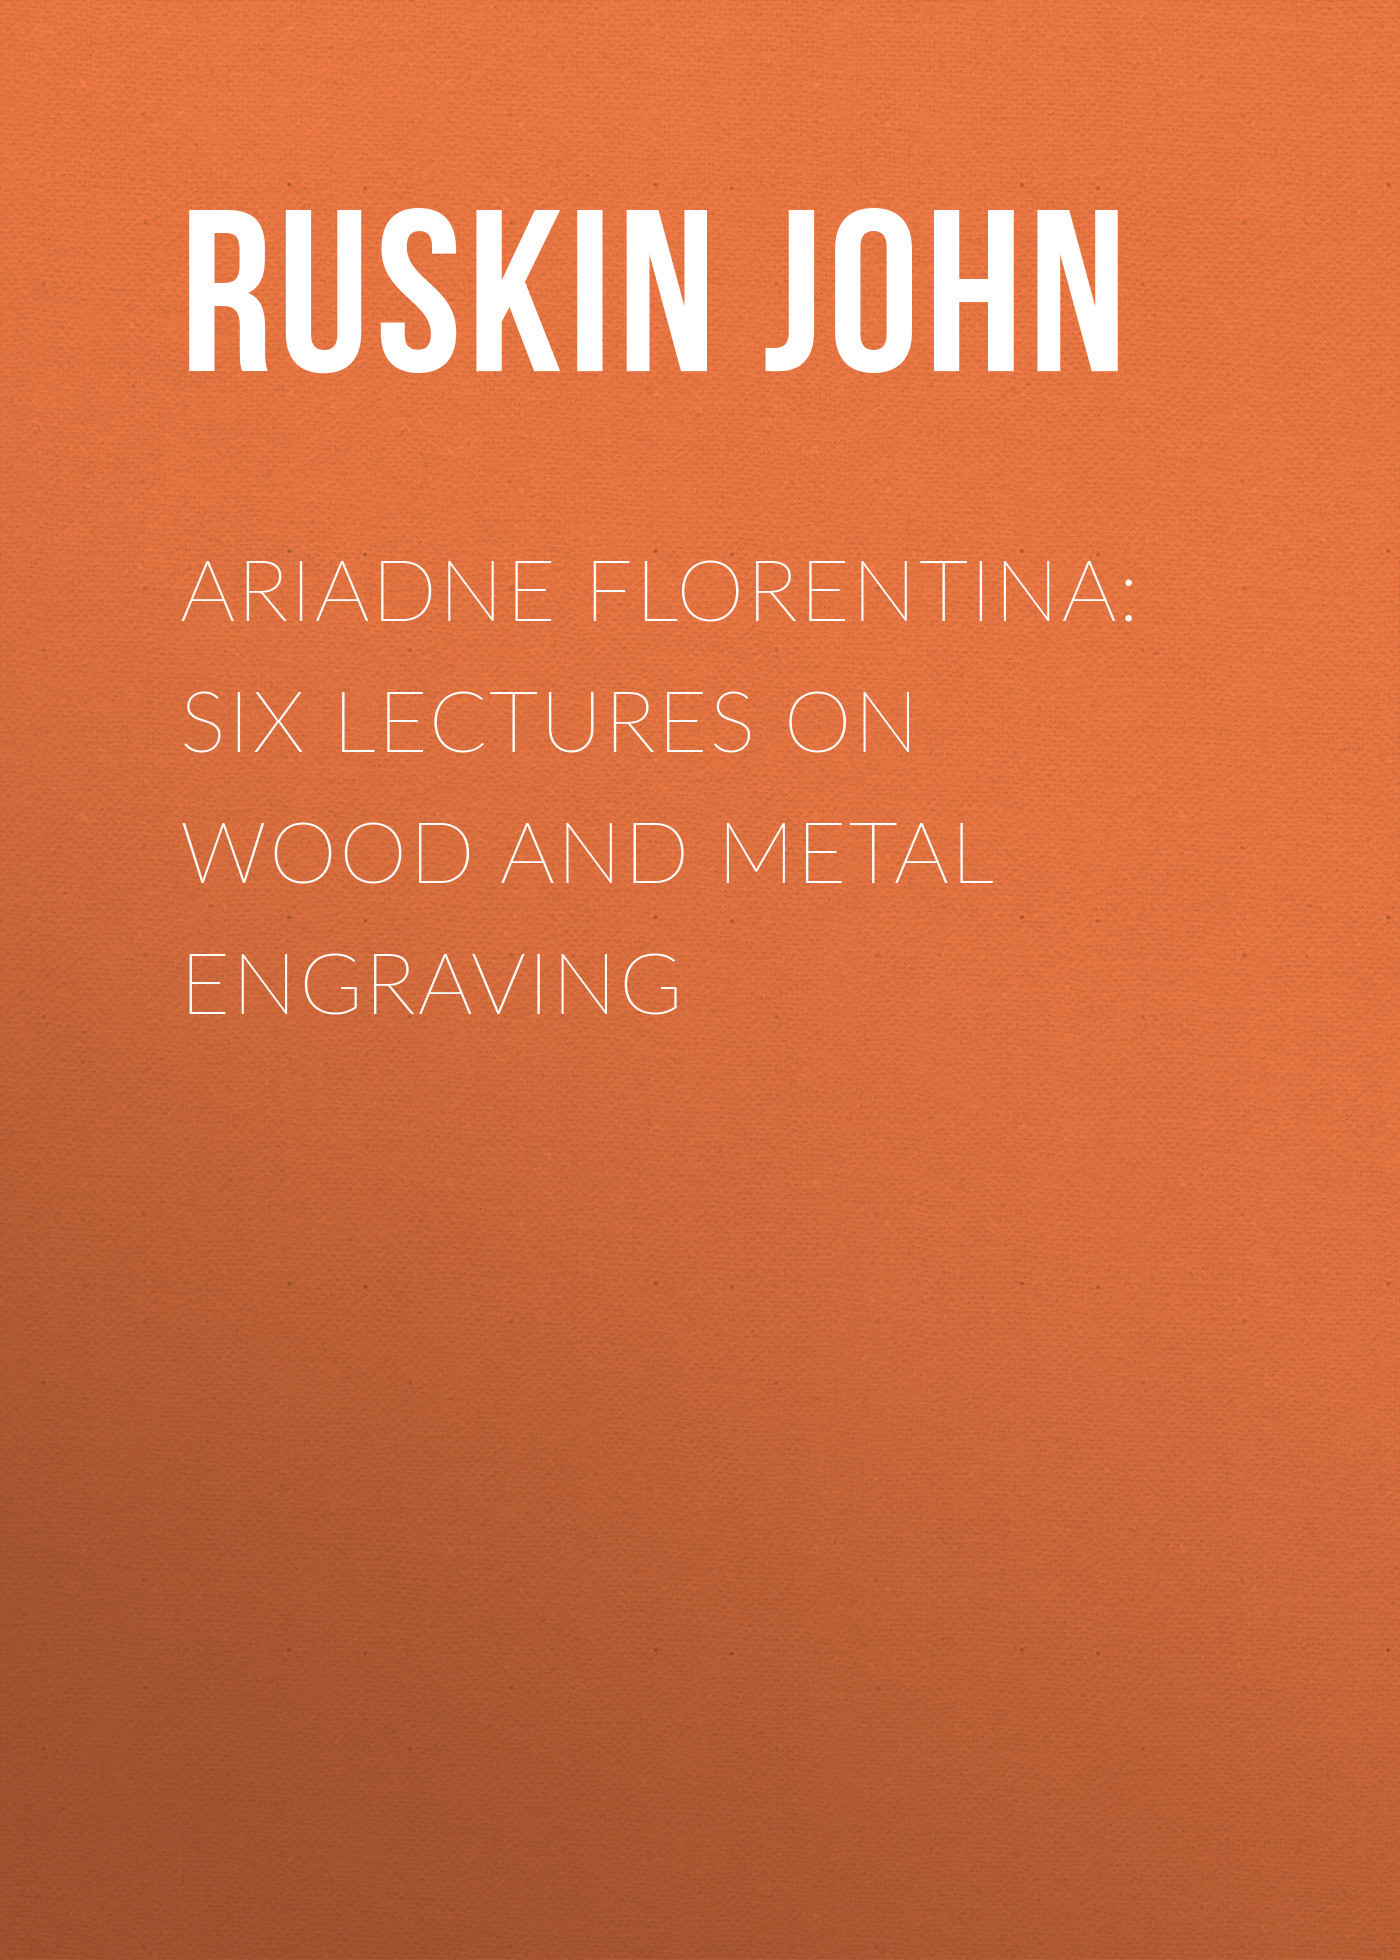 Ruskin John Ariadne Florentina: Six Lectures on Wood and Metal Engraving new diy mini engraving machine full set of parts cnc engraving machine engraving stroke 240x180x30mm usb interface